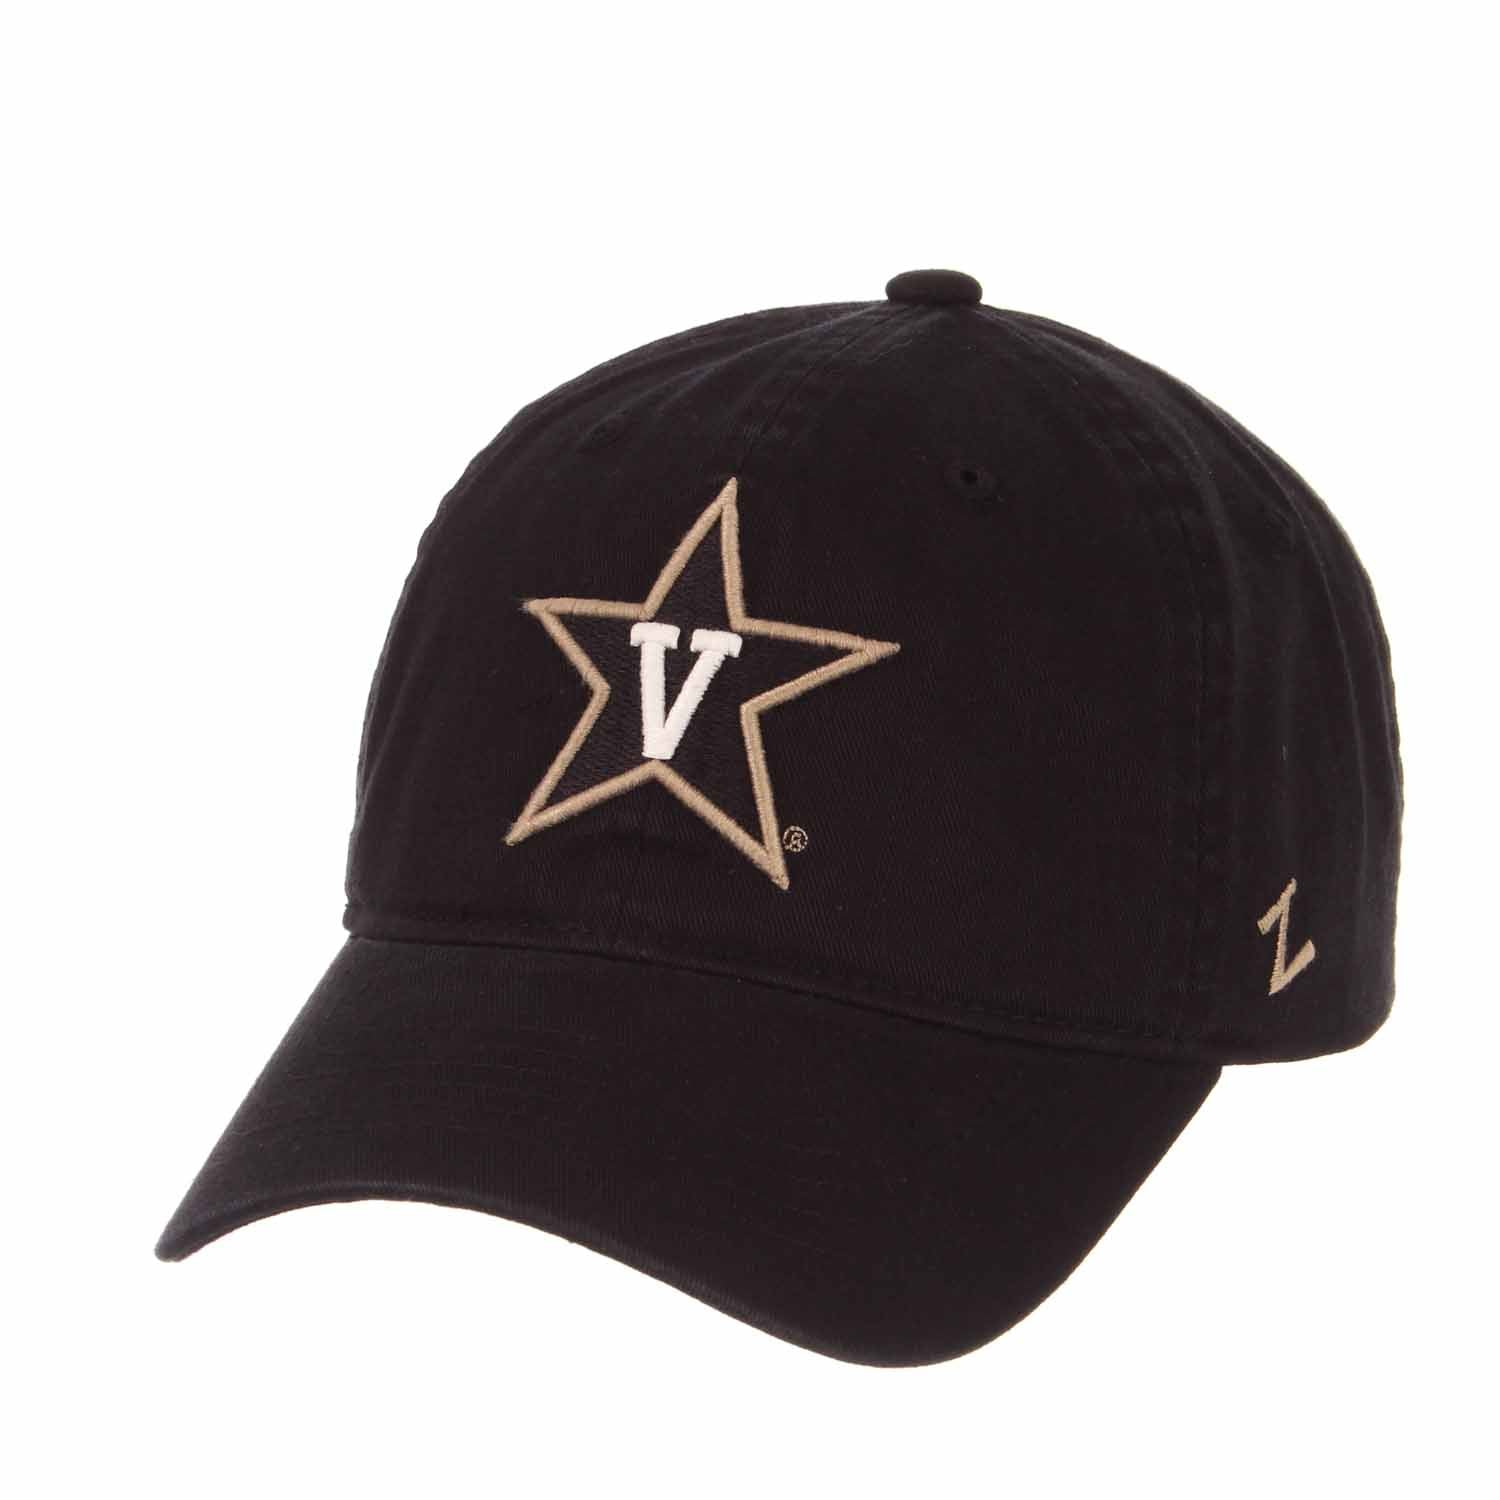 Adult NCAA All-American Relaxed Adjustable Hat (Vanderbilt Commodores - Black)